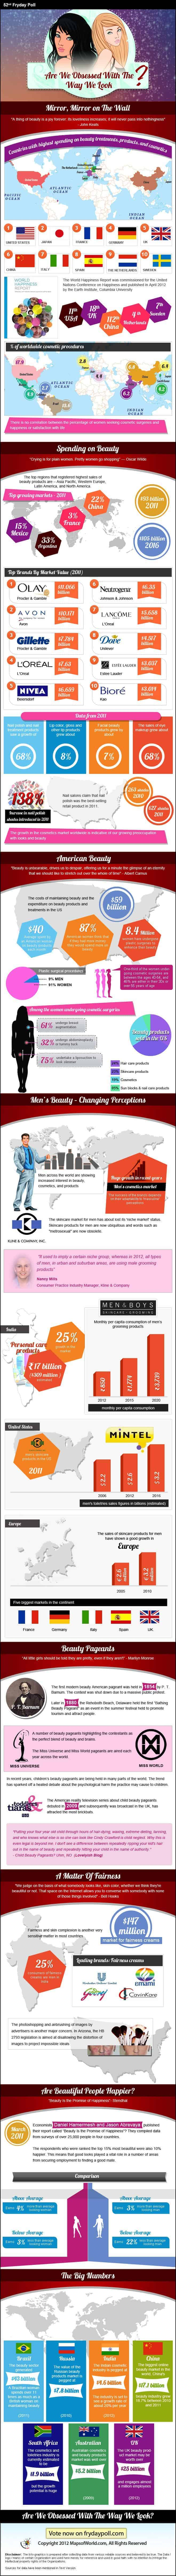 cosmetic industry stats and trends worldwide